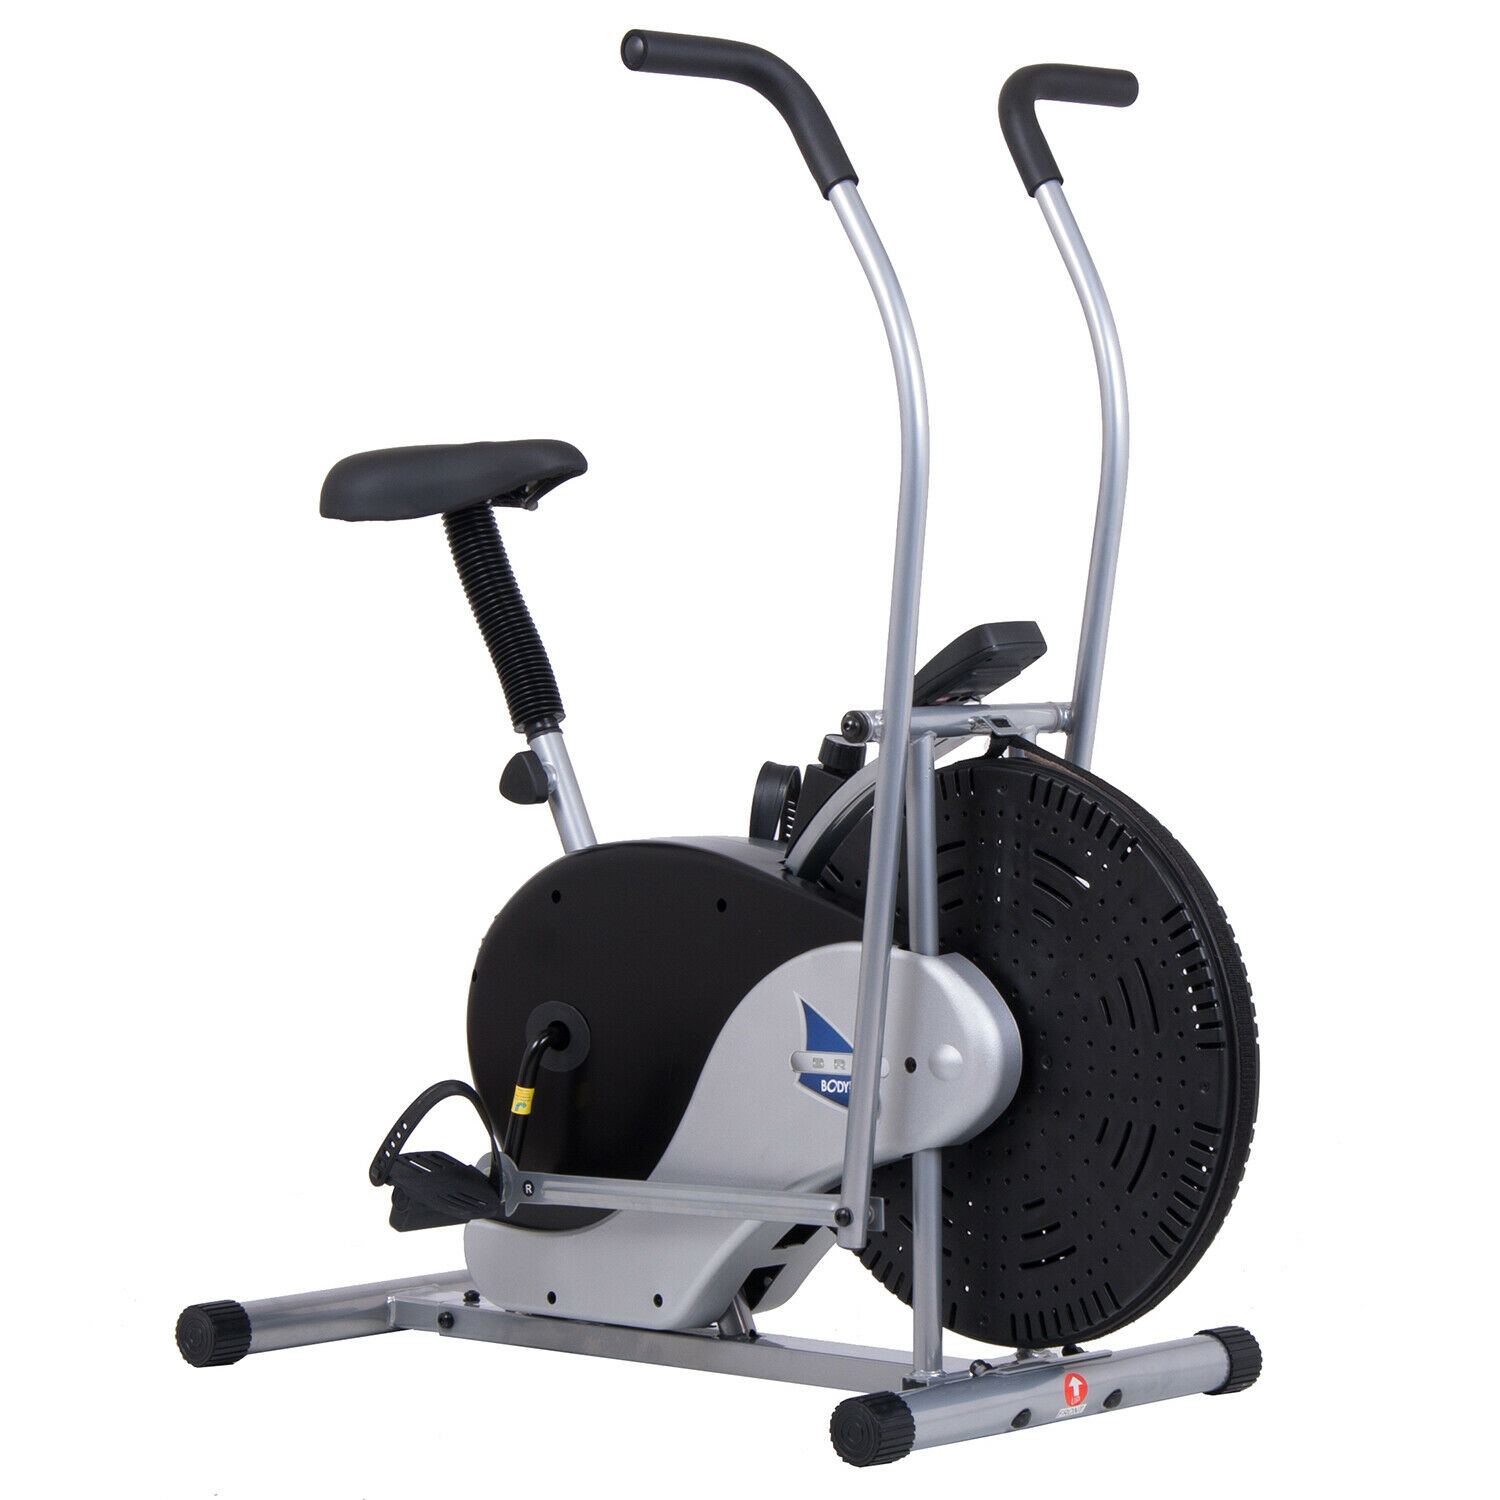 Body Rider Upright Fan Bike Dual Action Handlebars Comfortable And Durabe Pedals action and bike body comfortable dual fan handlebars rider upright